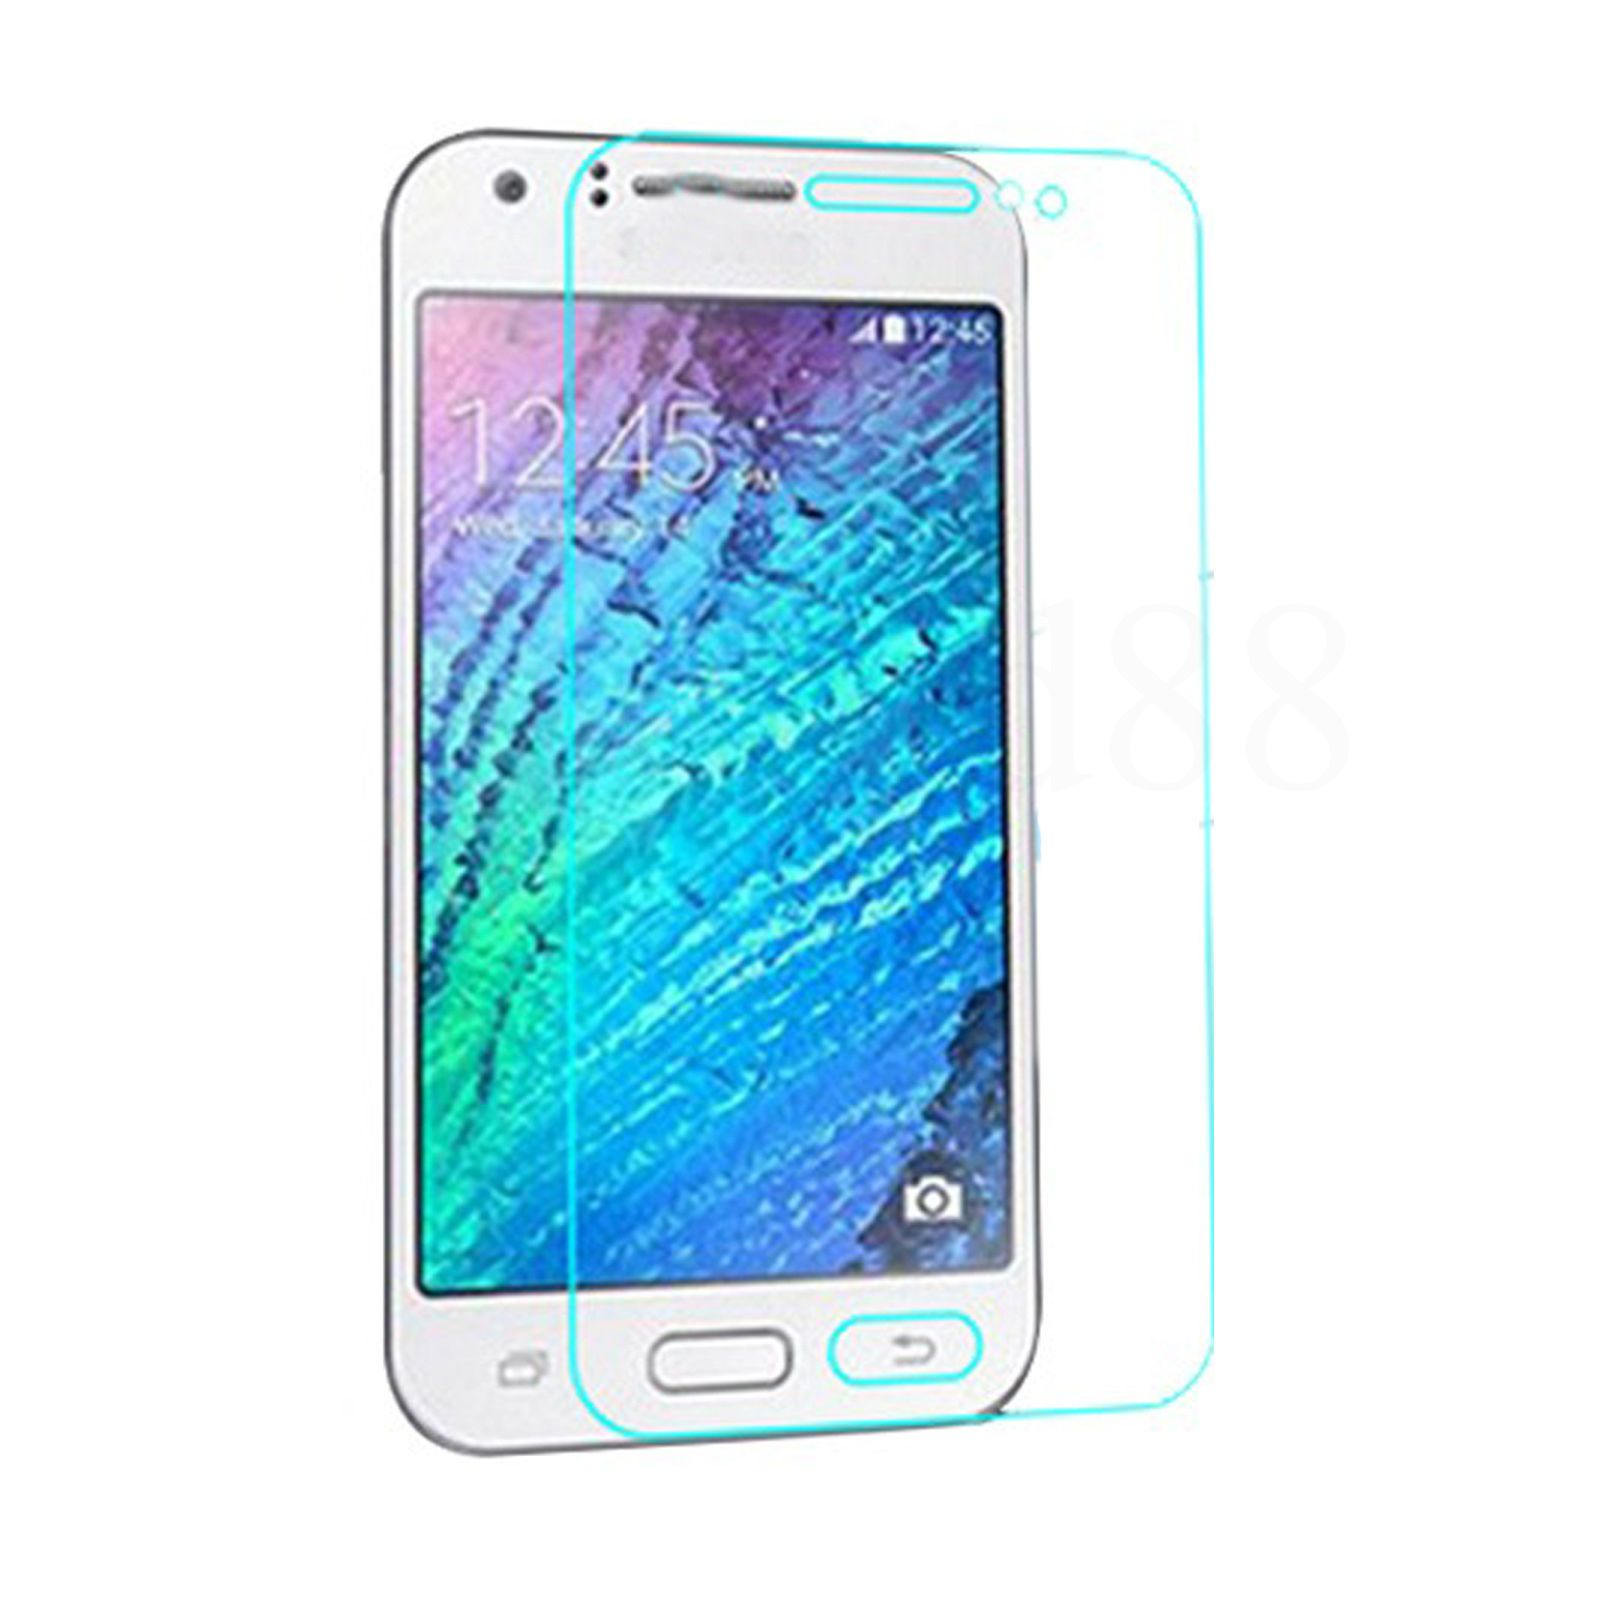 033mm Ultra Thin 9h Tempered Glass Screen Protector For S Quality Samsung Galaxy N910 Note 4 Clear Hard J5 Sm J500f